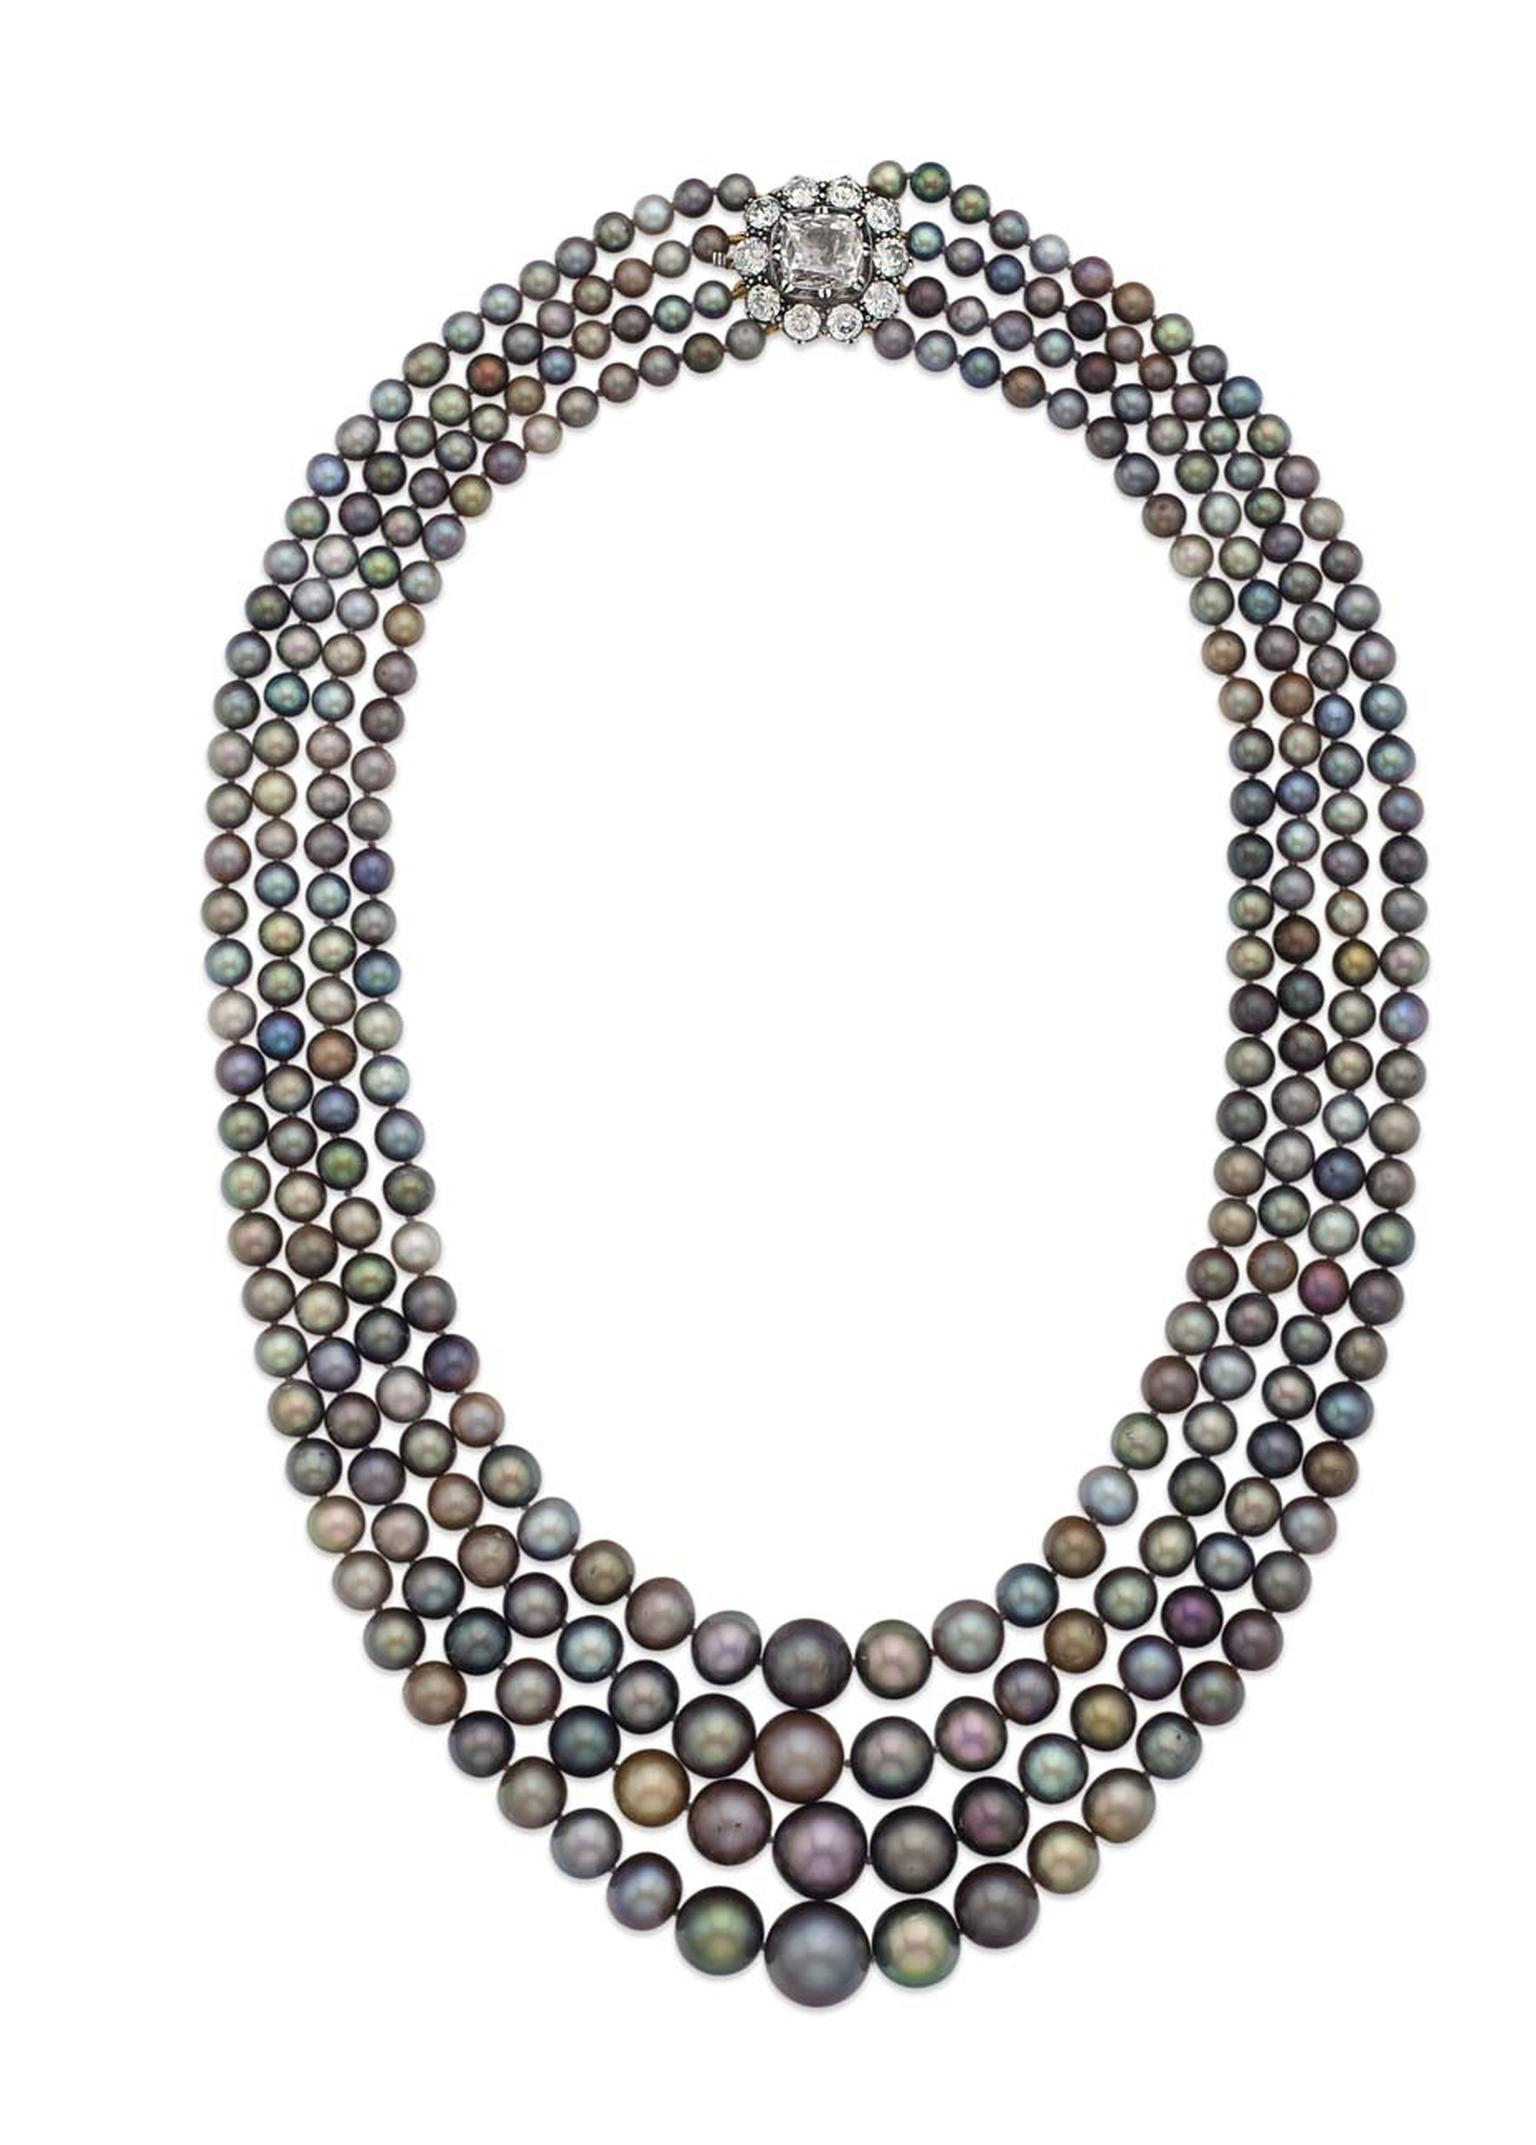 Strands of natural pearls matching in color and shape are exceedingly rare, and this four-strand necklace, the main attraction at Christie's NY Magnificent Jewels auction, comprises more than 289 black pearls with highly attractive rose, green or purple o